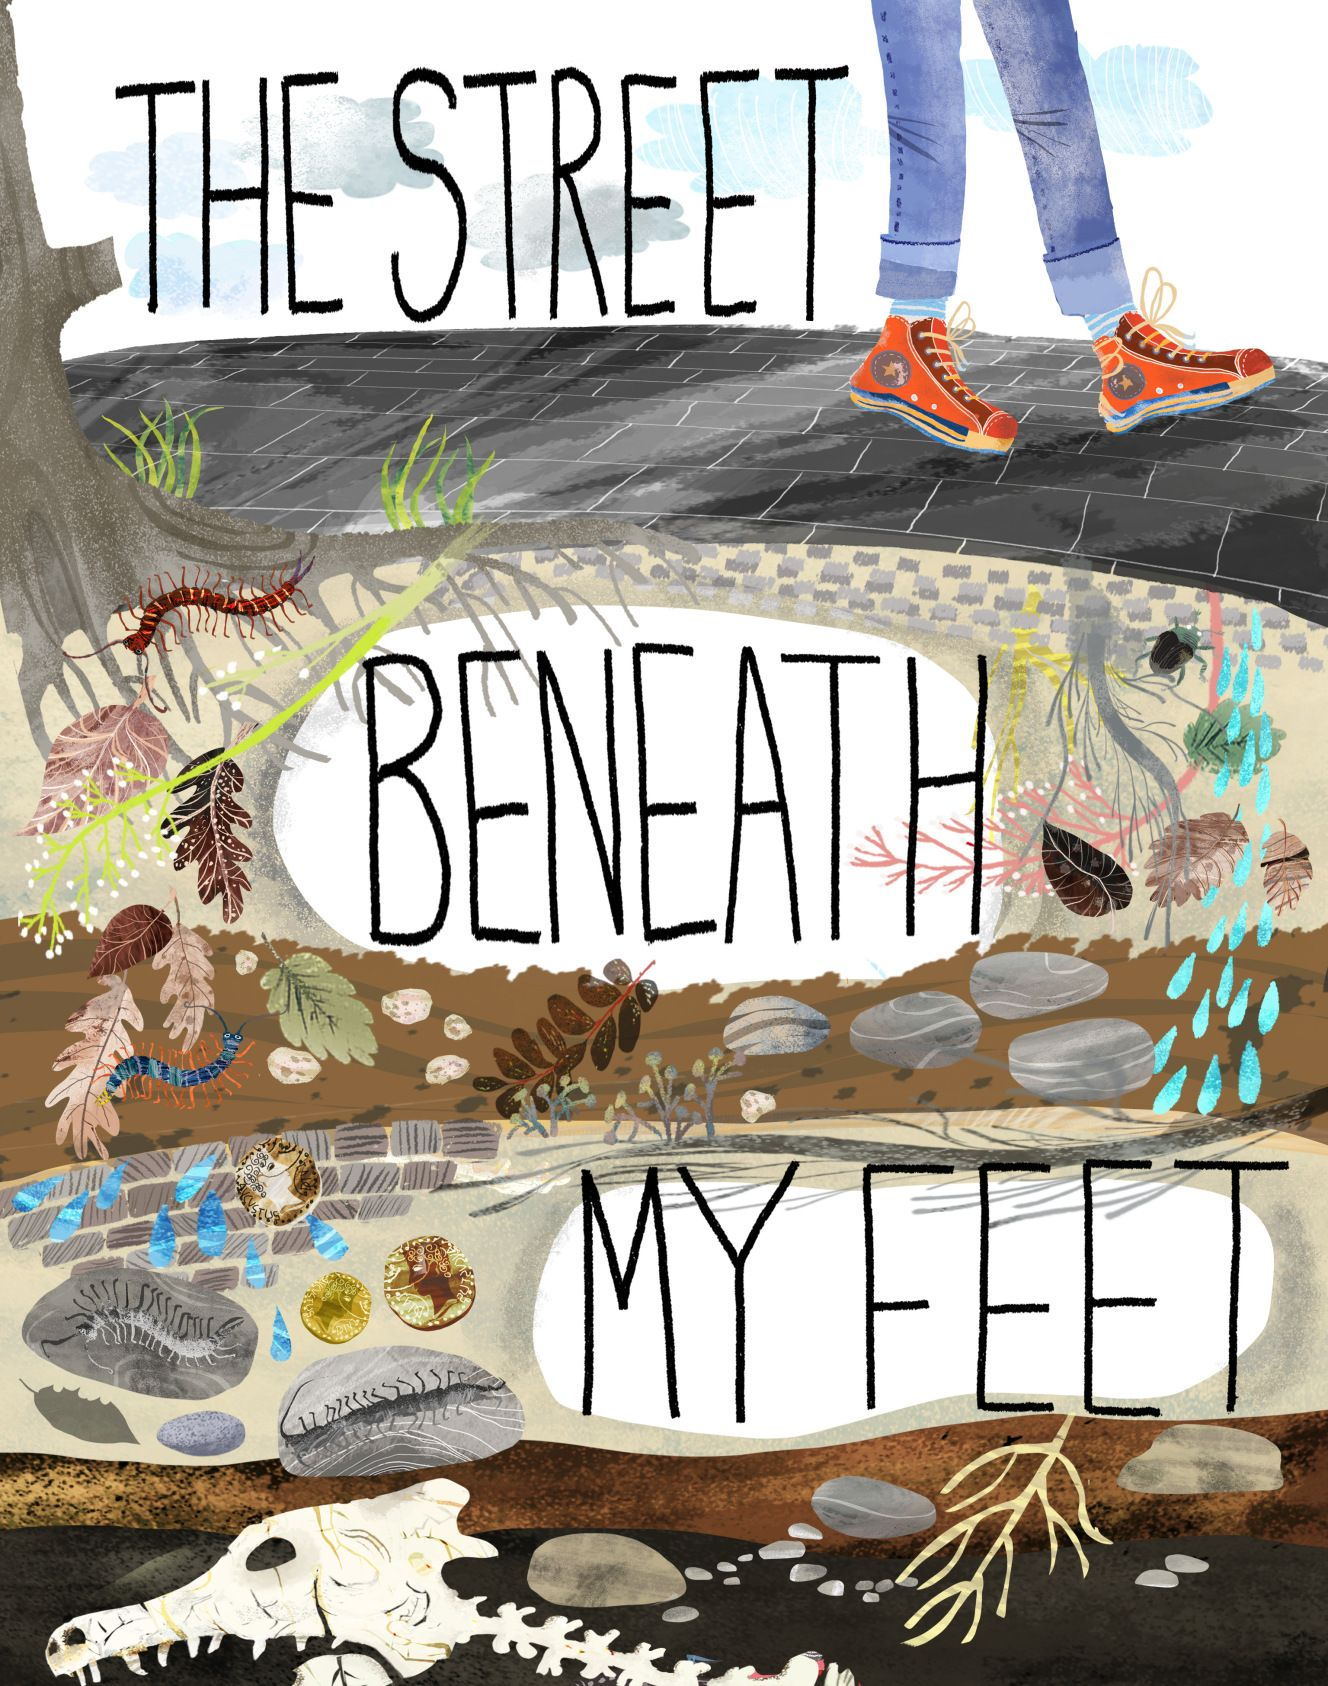 Read more about the article Protected: The street beneath my feat